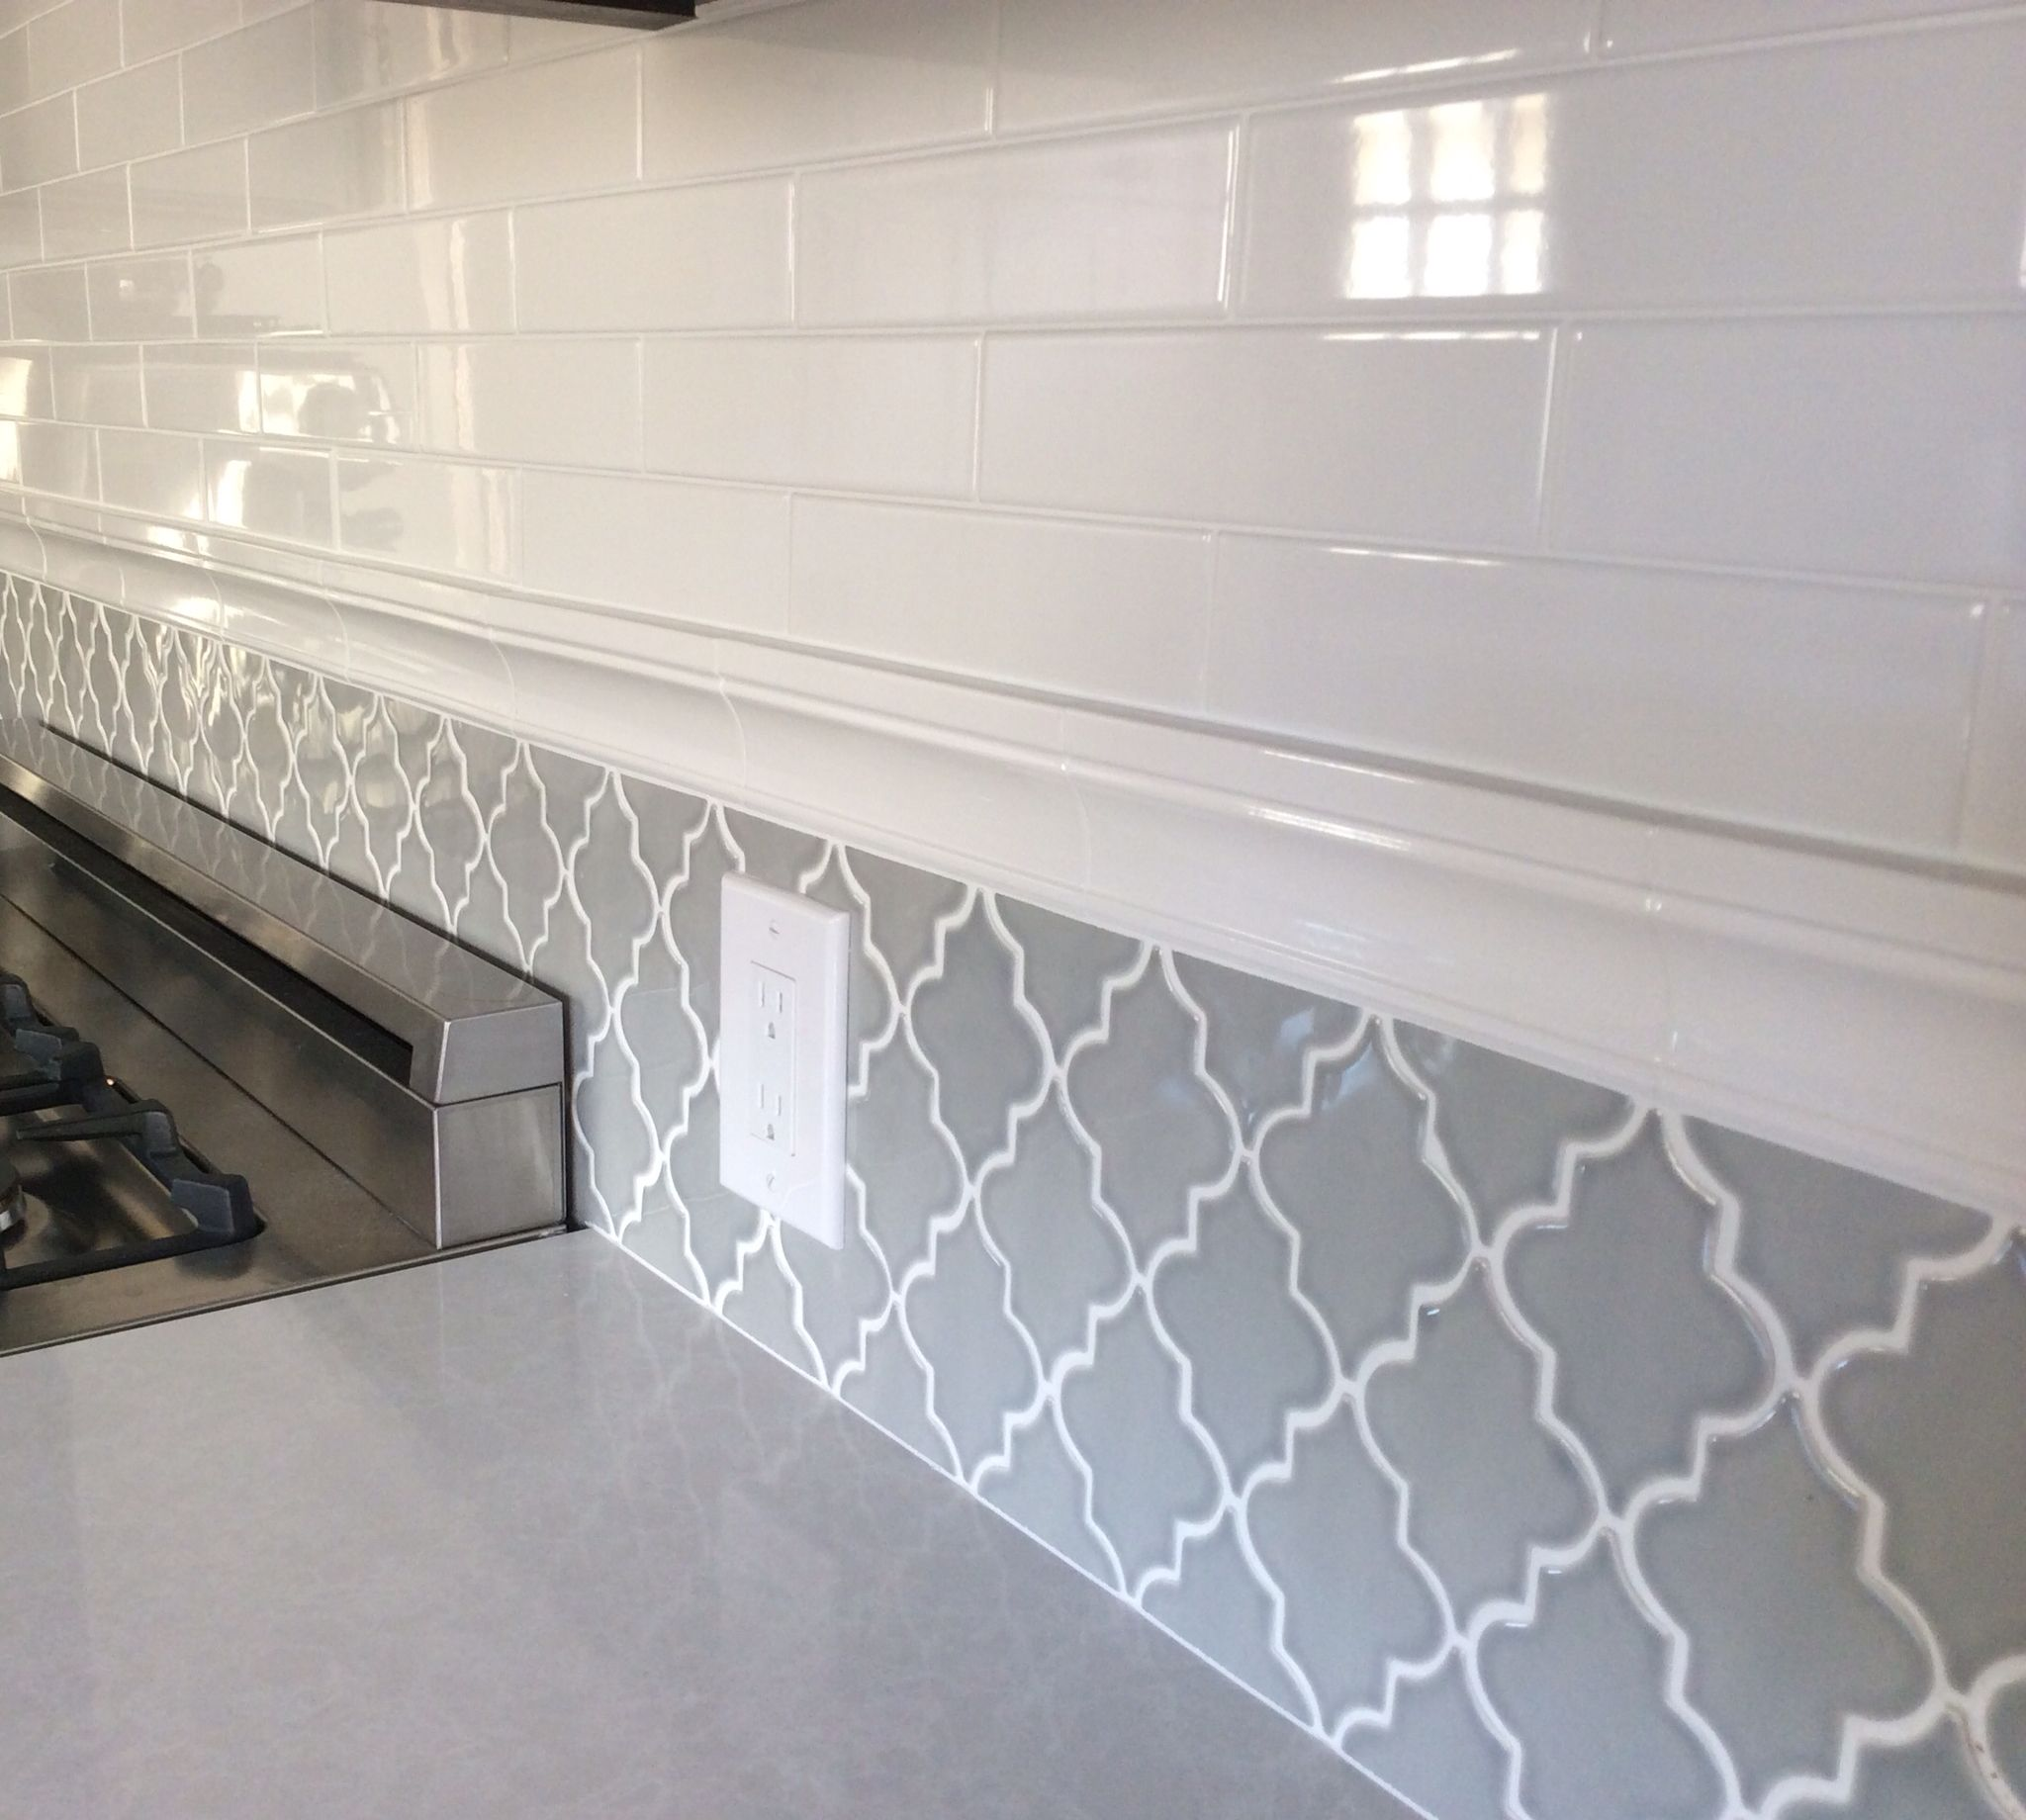 Gray Ceramic Tile Backsplash Backsplash In My New Kitchen Subway Tiles And Arabesque